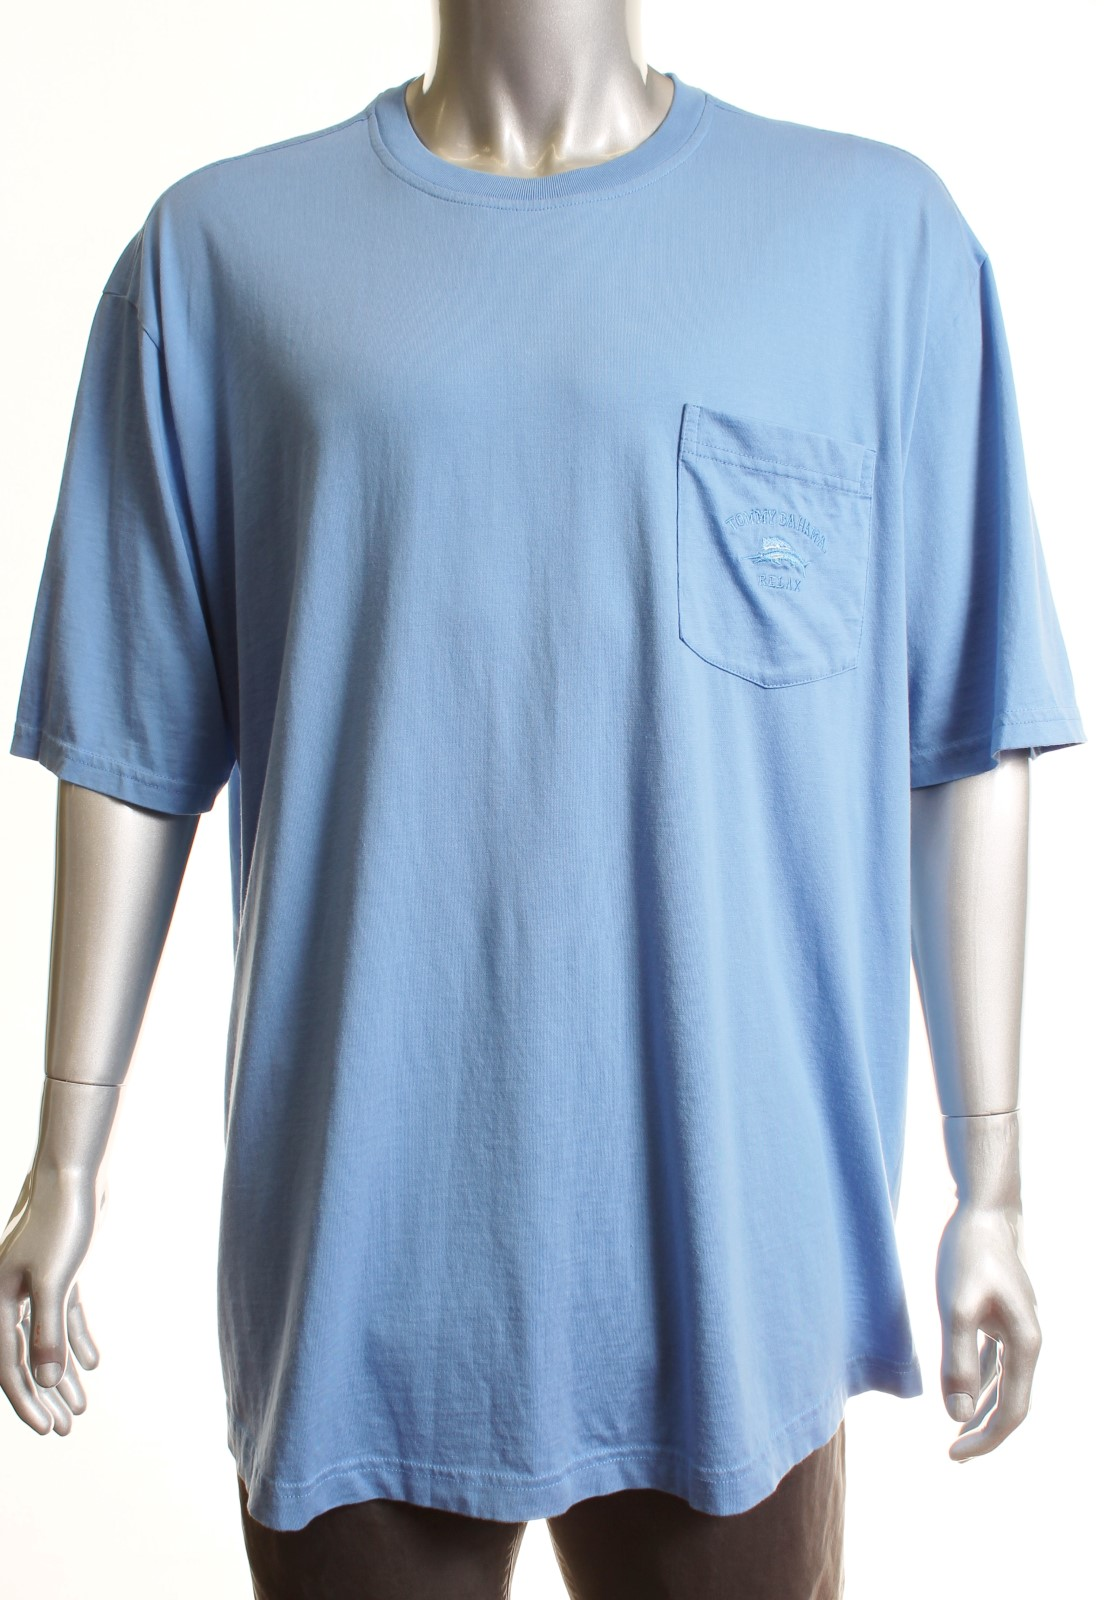 Tommy bahama relax bali high tide t shirt men 39 s xxl nwt for Tommy bahama florida shirt